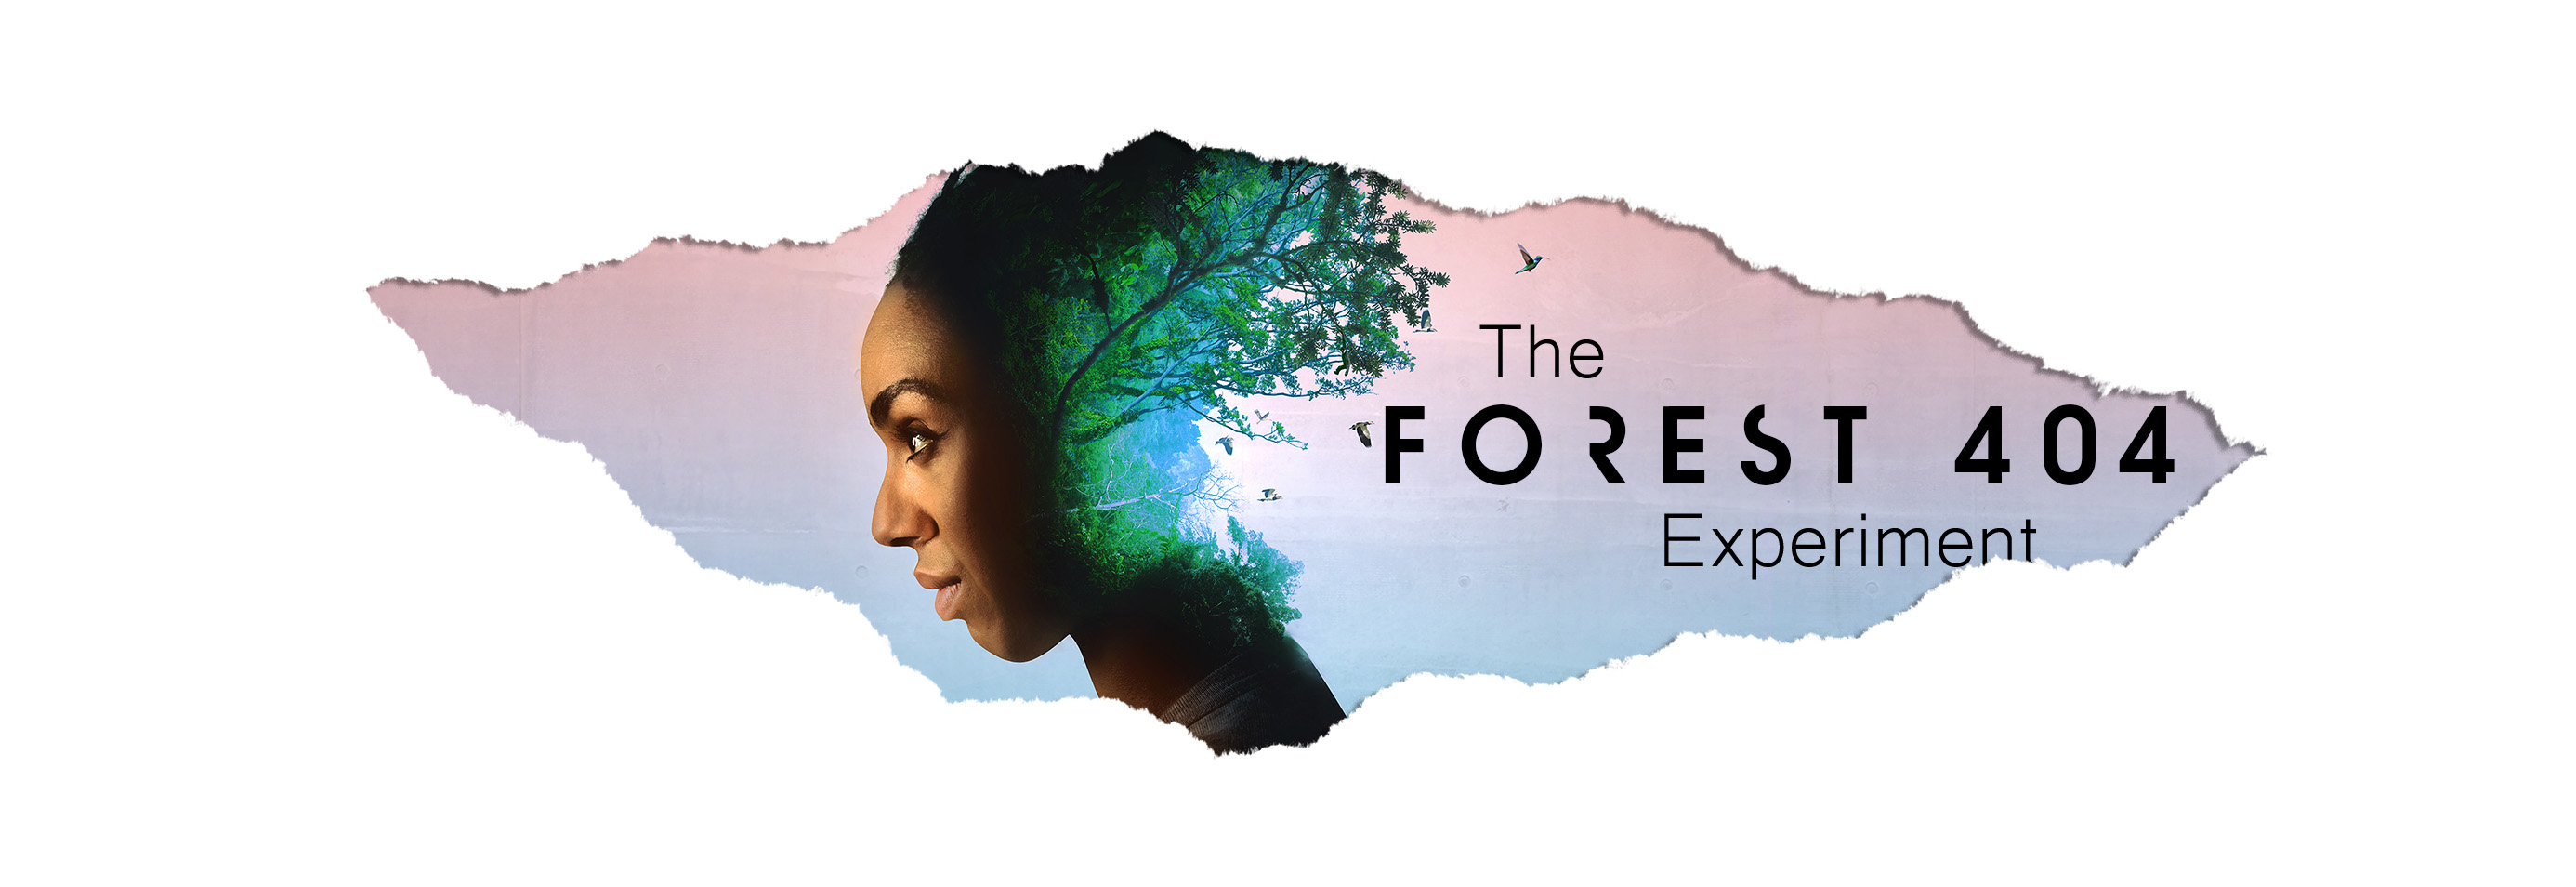 Forest 404 Experiment logo